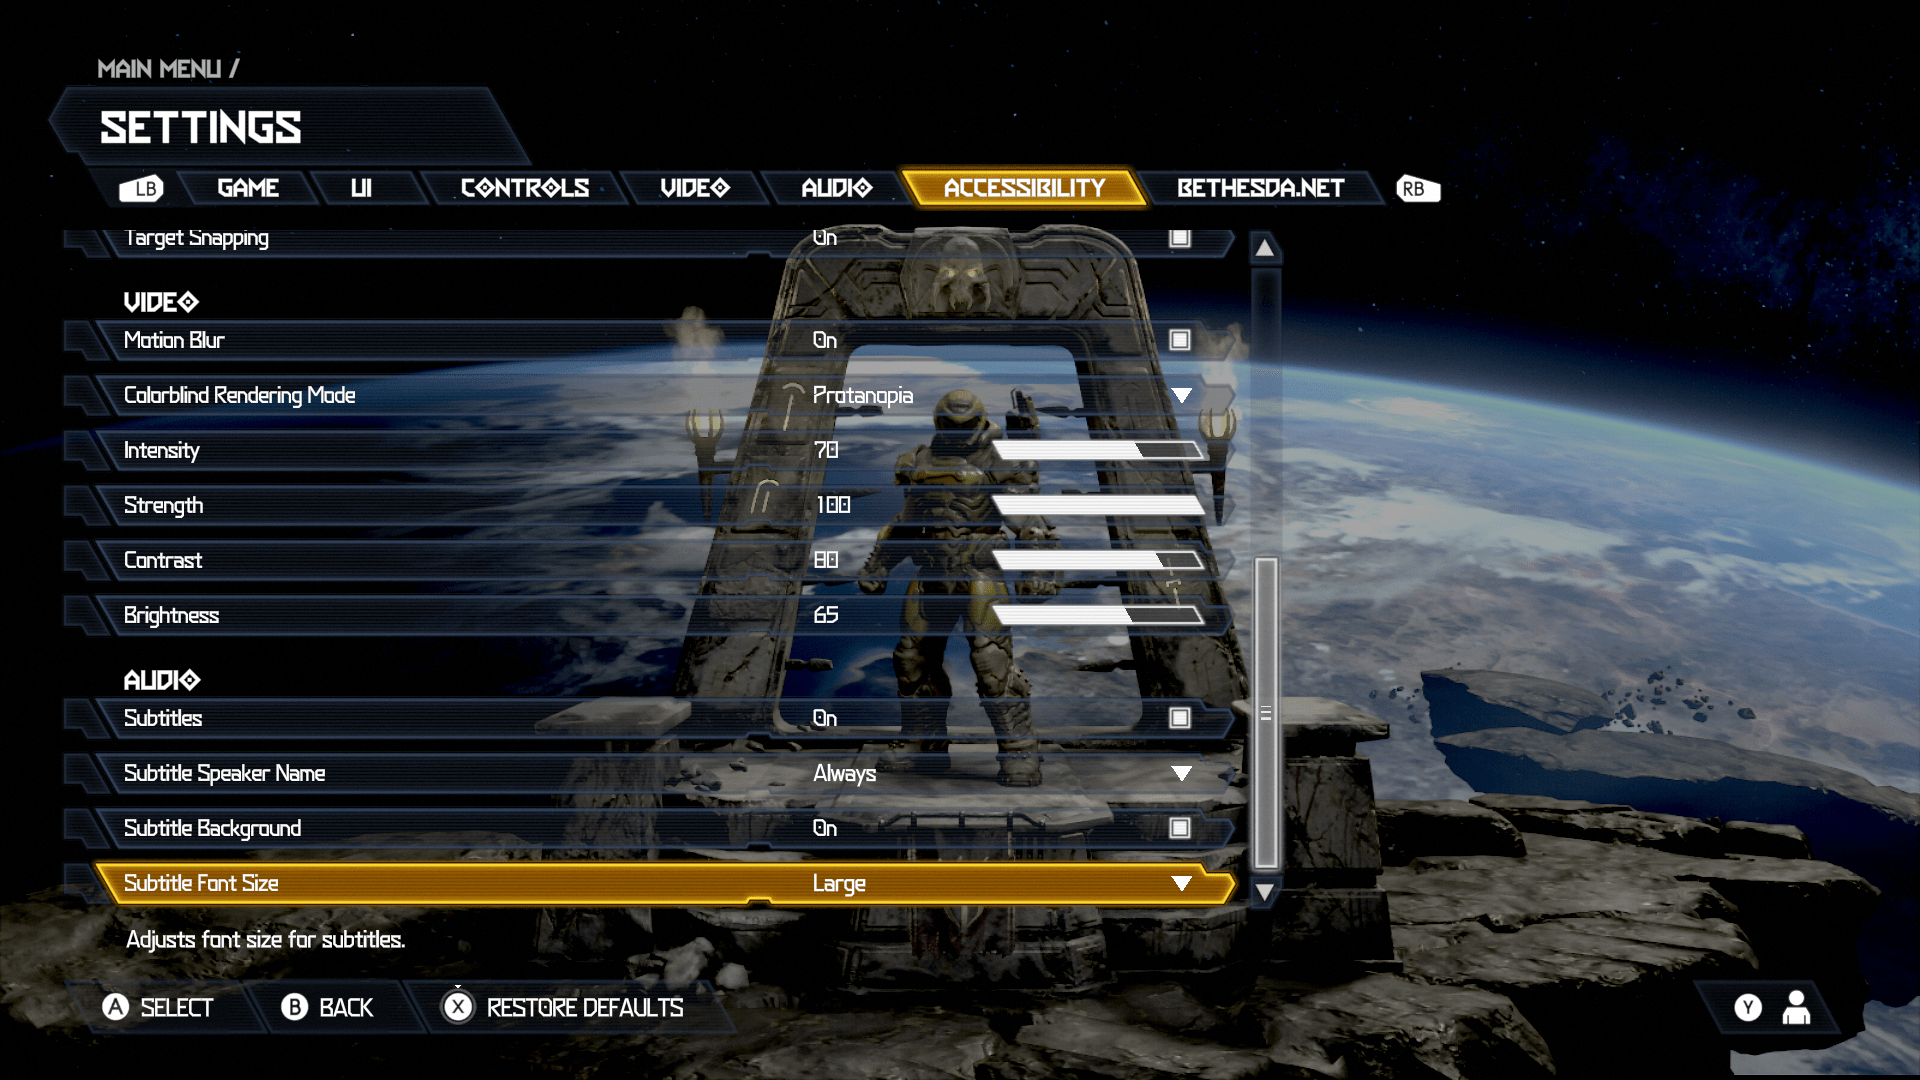 Doom Eternal Accessibility Settings Menu 2 of 2. Options include: Motion Blur set to On, Colorblind Rendering Mode showing the Protanopia setting, Intensity set at 70%, Strength set at 100%, Contrast set at 80%, Brightness set at 65%, Subtitles set to On, Subtitle Speaker Name set to Always, Subtitle Background set to On, Subtitle Font Size set to Large